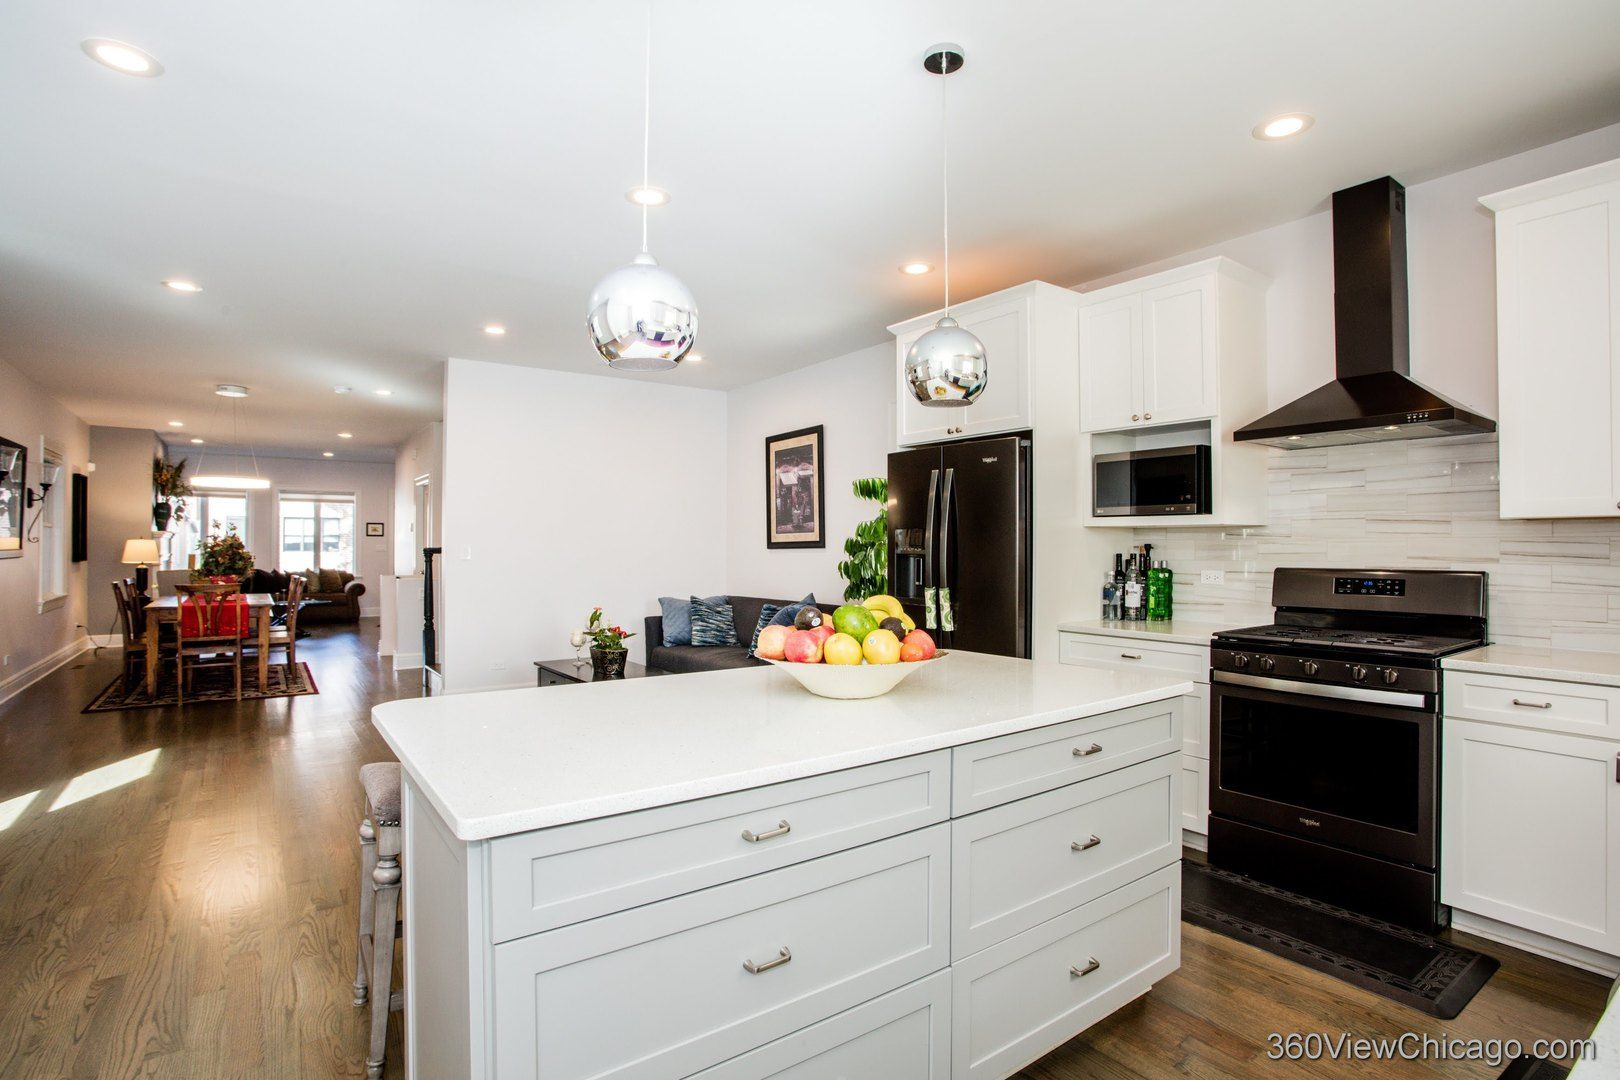 Photo 15: Photos: 1733 Troy Street in Chicago: CHI - Humboldt Park Residential for sale ()  : MLS®# 10911567